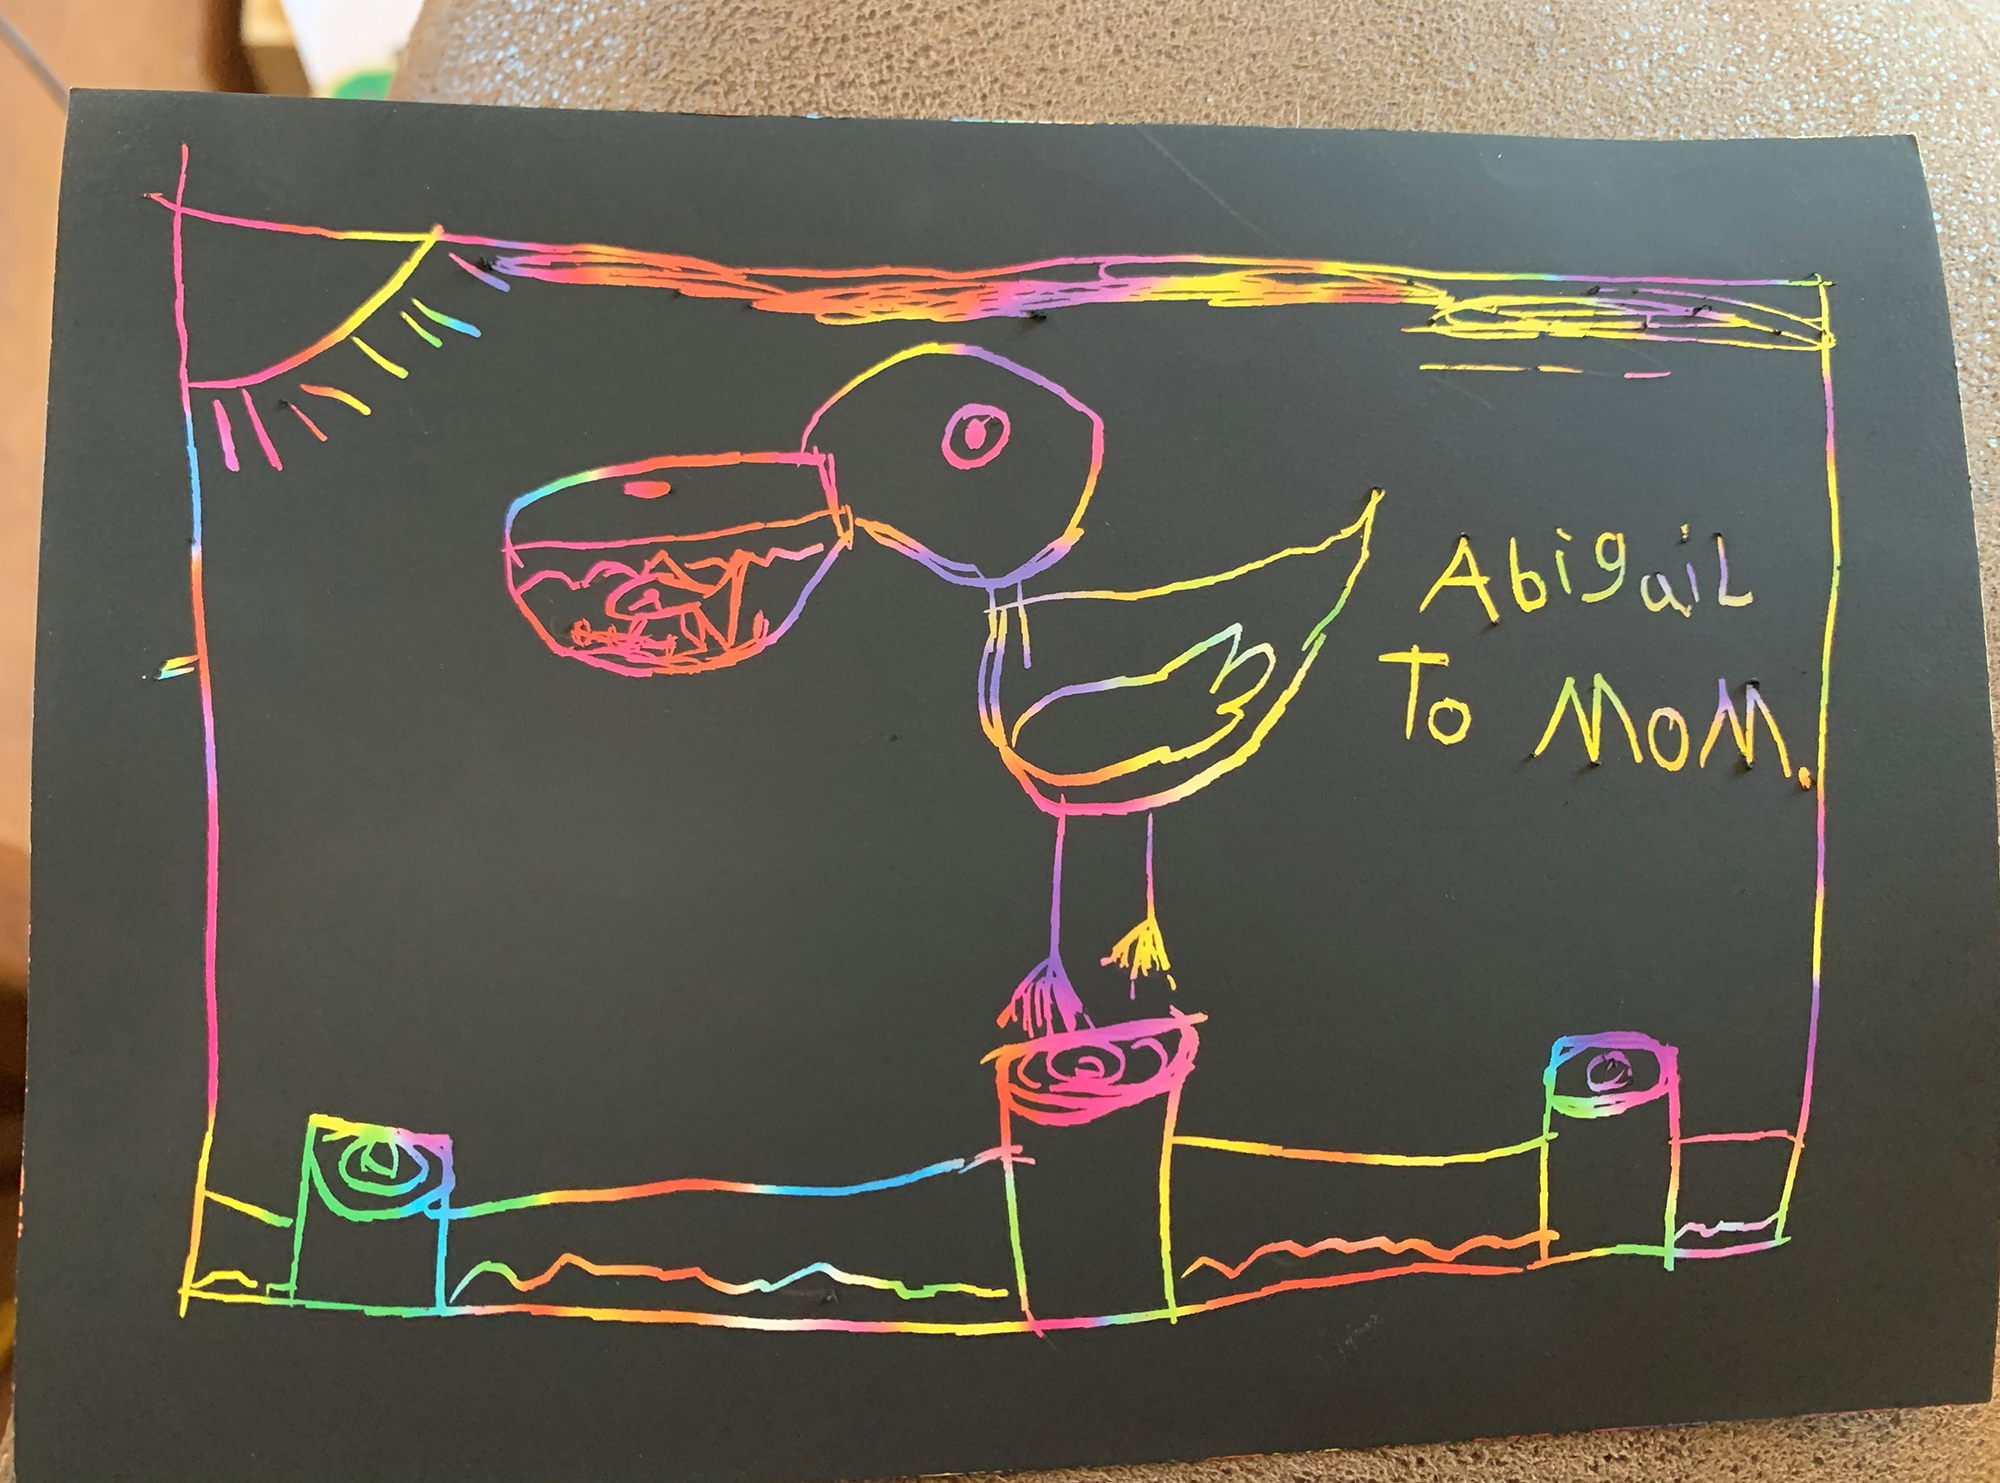 1st. Abigail  Bruhn, pelican drawing for mom